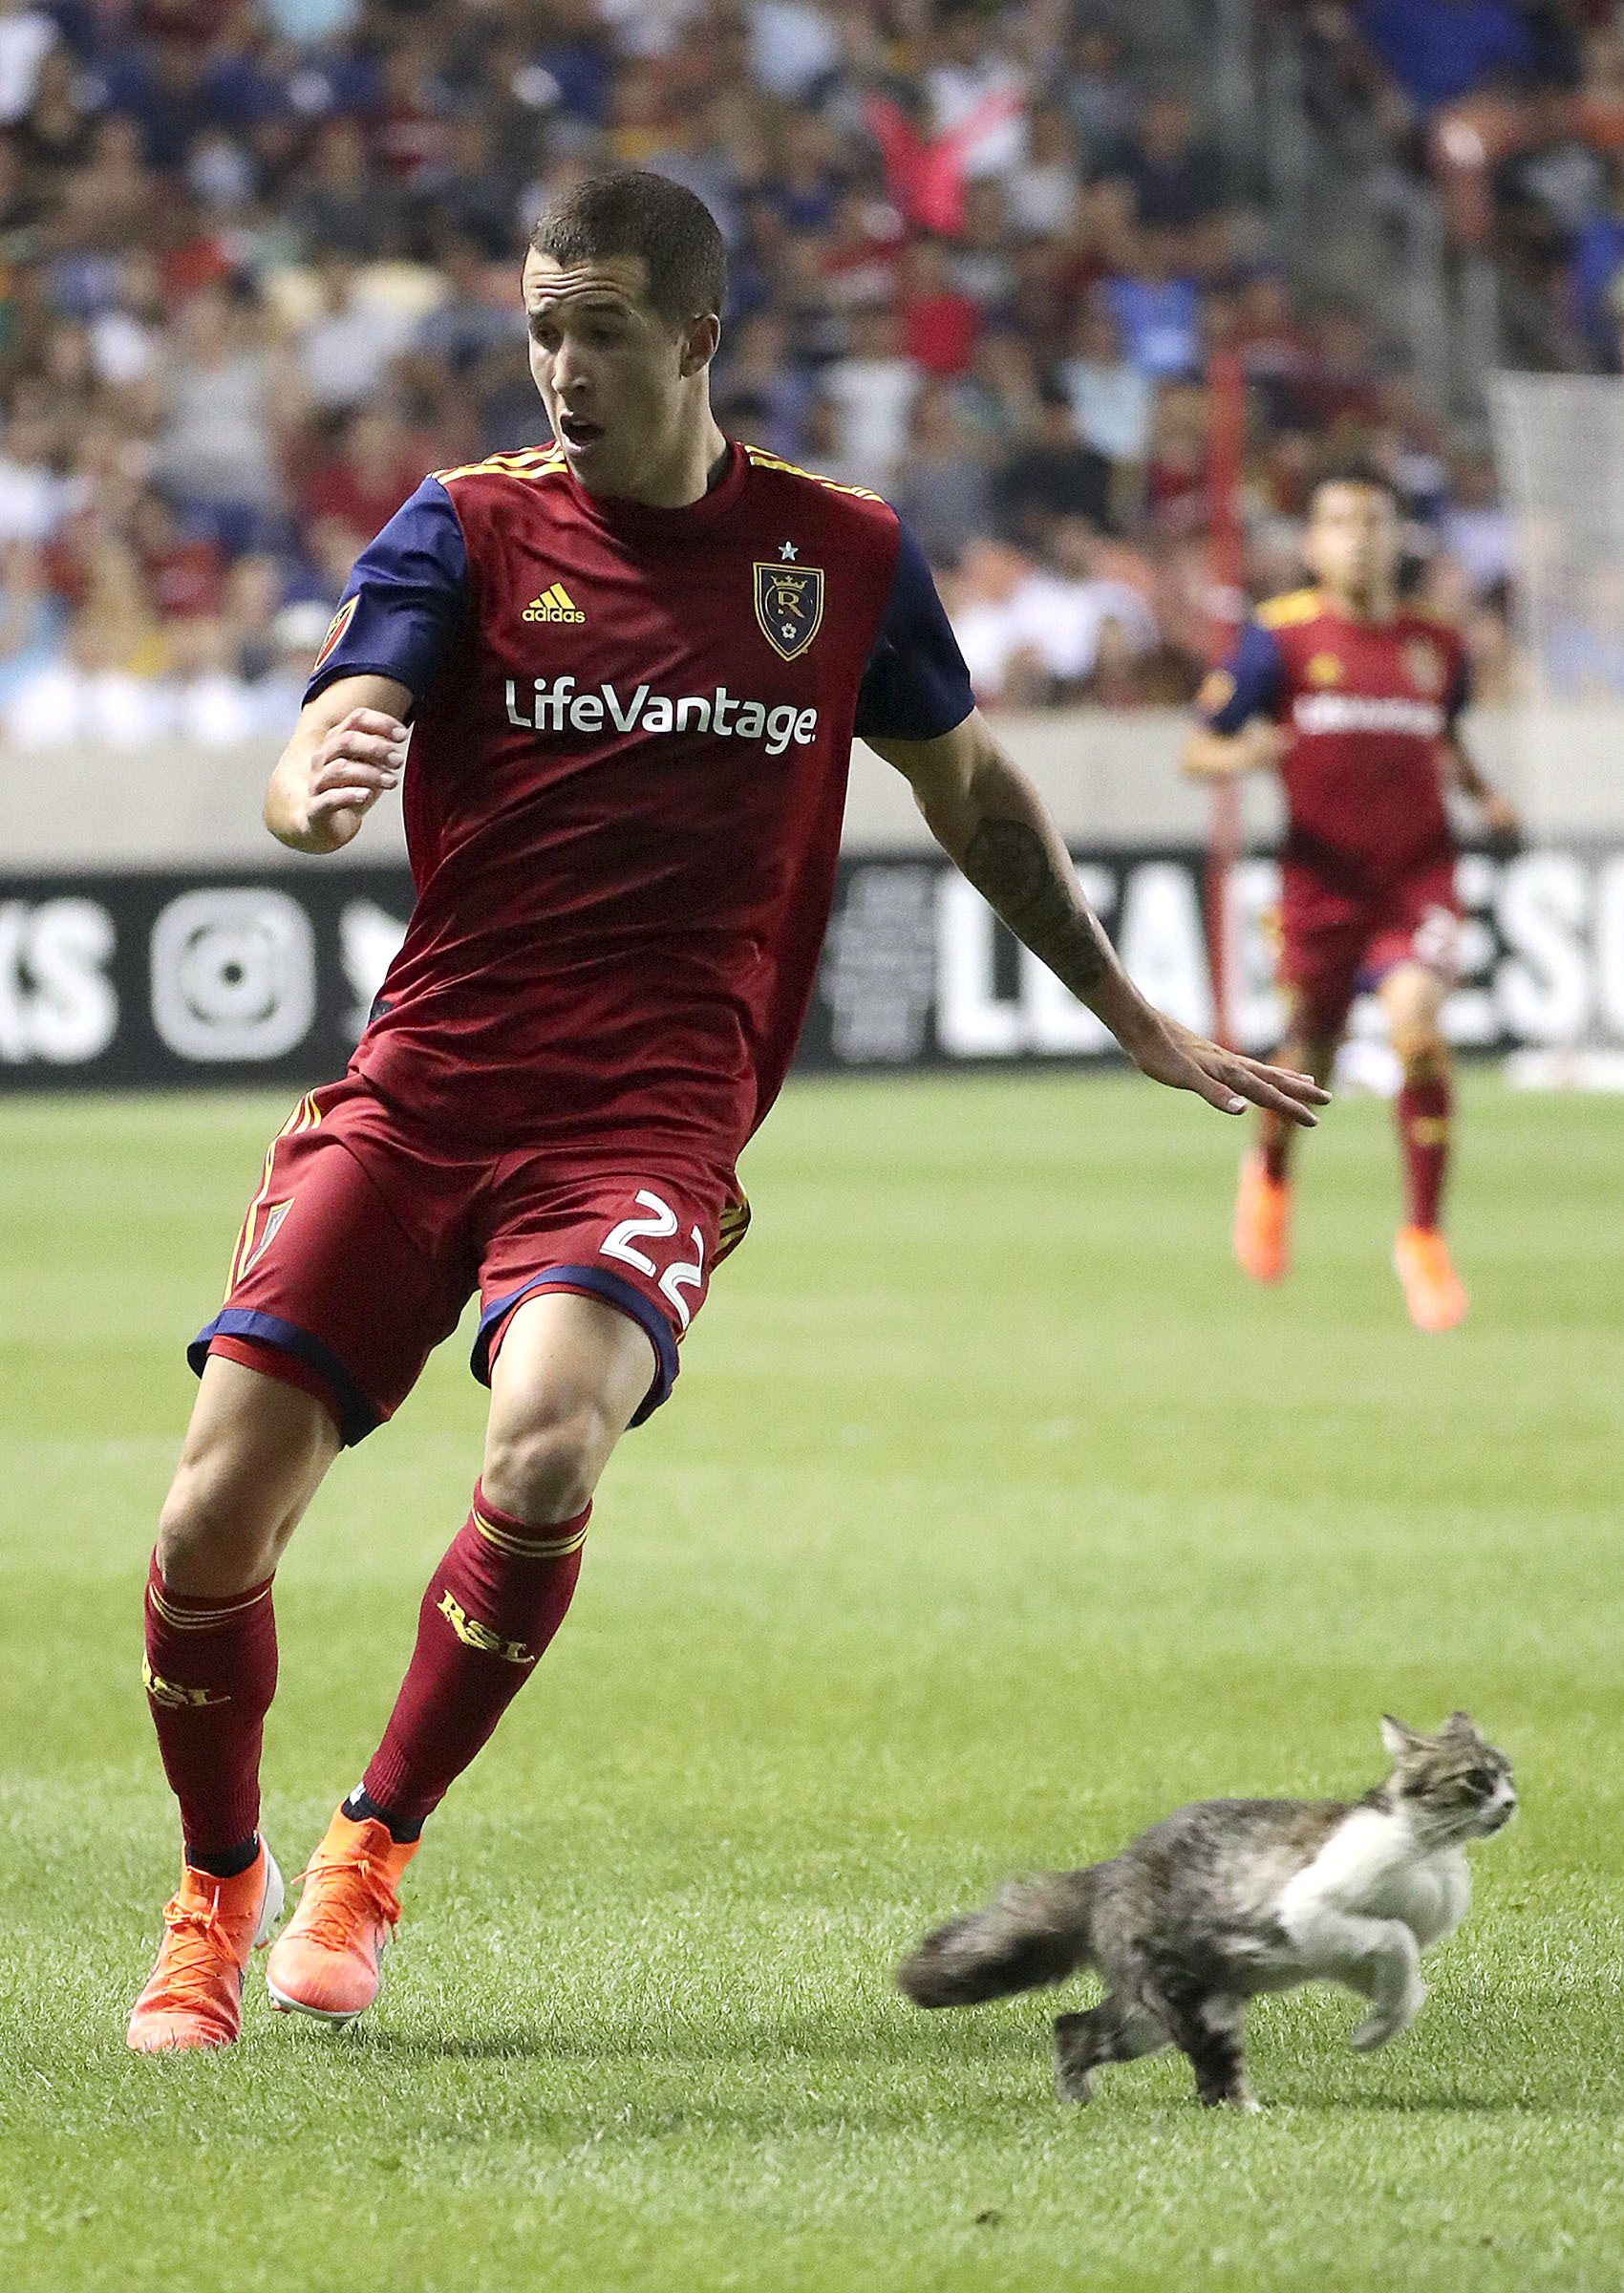 A cat runs past Real Salt Lake defender Aaron Herrera (22) during the last minutes of a Leagues Cup soccer match against the UANL Tigres at Rio Tinto Stadium in Sandy on Wednesday, July 24, 2019. Real Salt Lake lost 0-1.